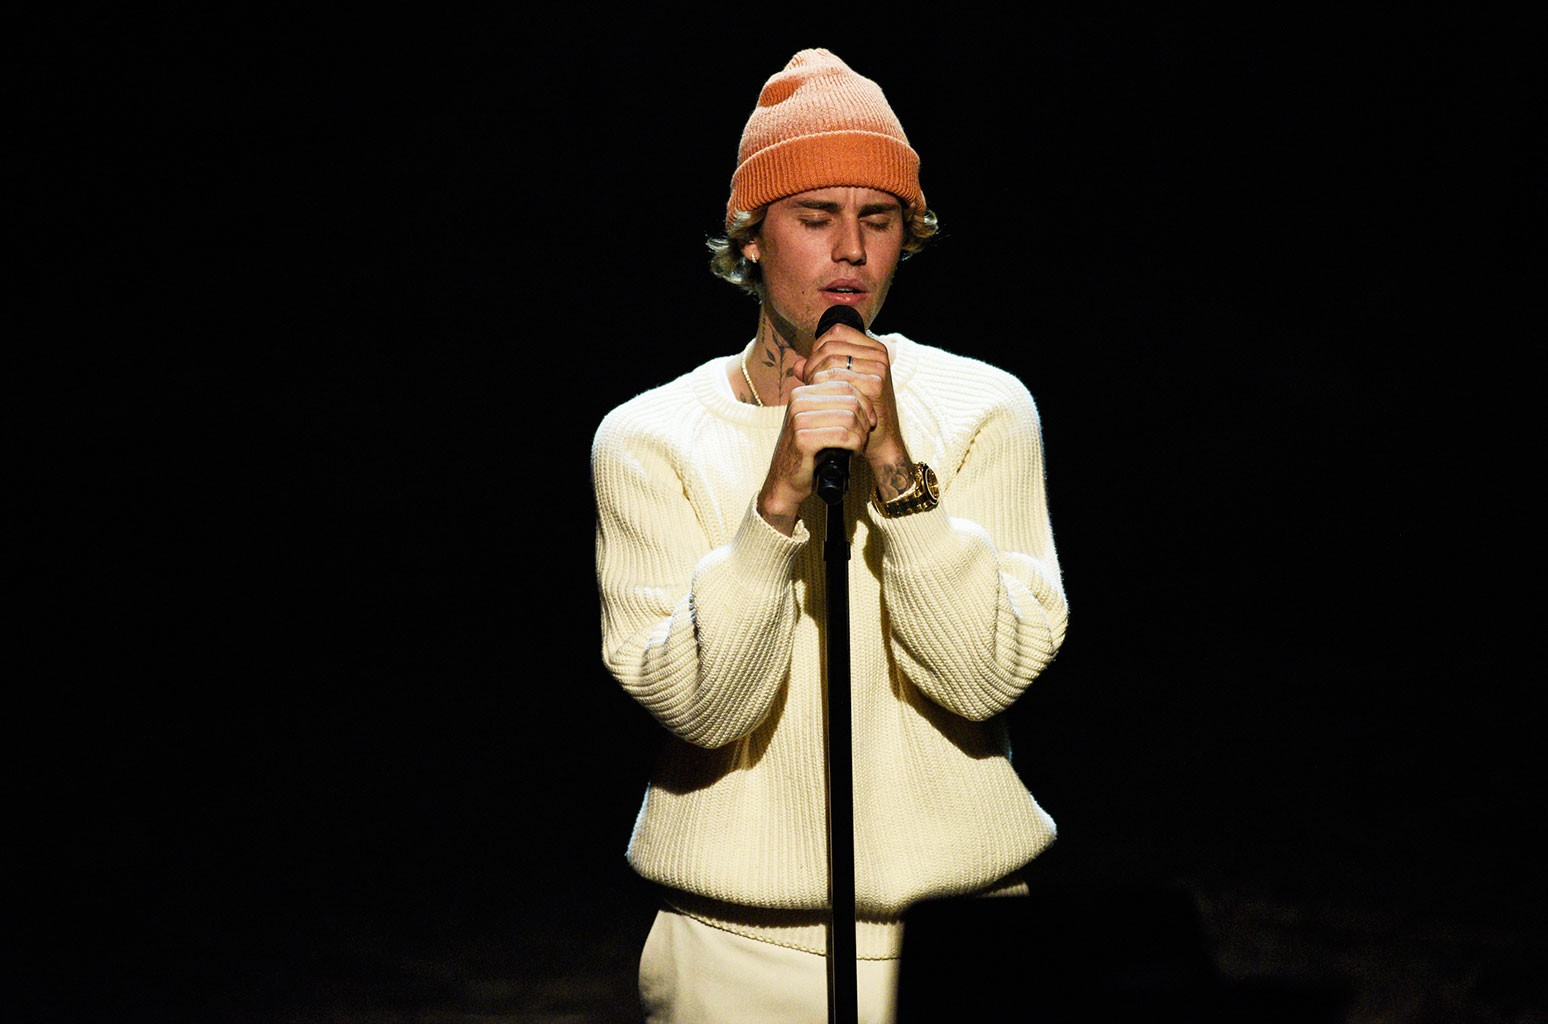 Justin Bieber says he's not becoming pastor, disowns Hillsong